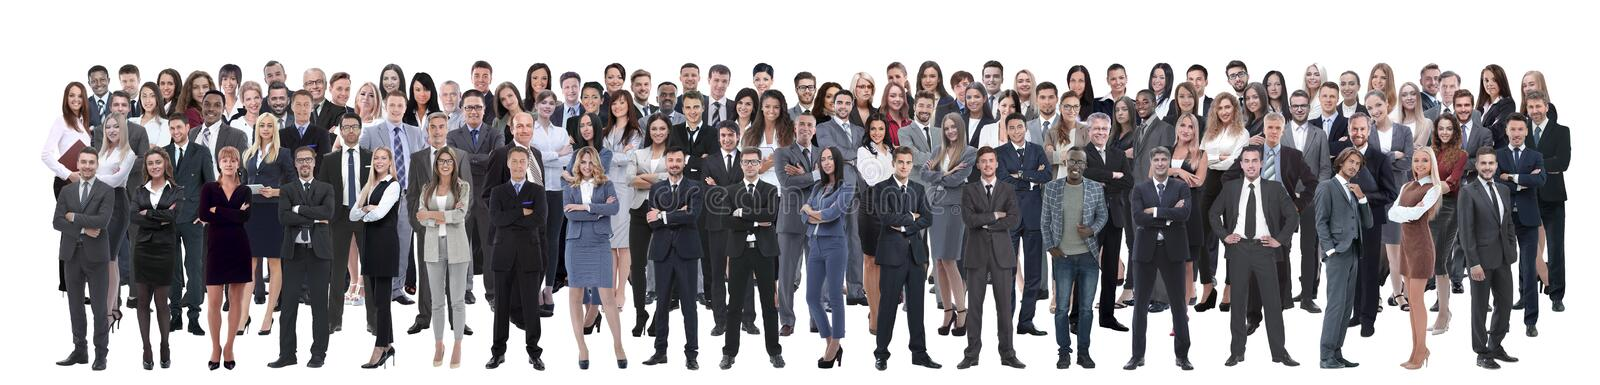 Business team formed of young businessmen and businesswomen standing over a white background. Young attractive business people - the elite business team stock images